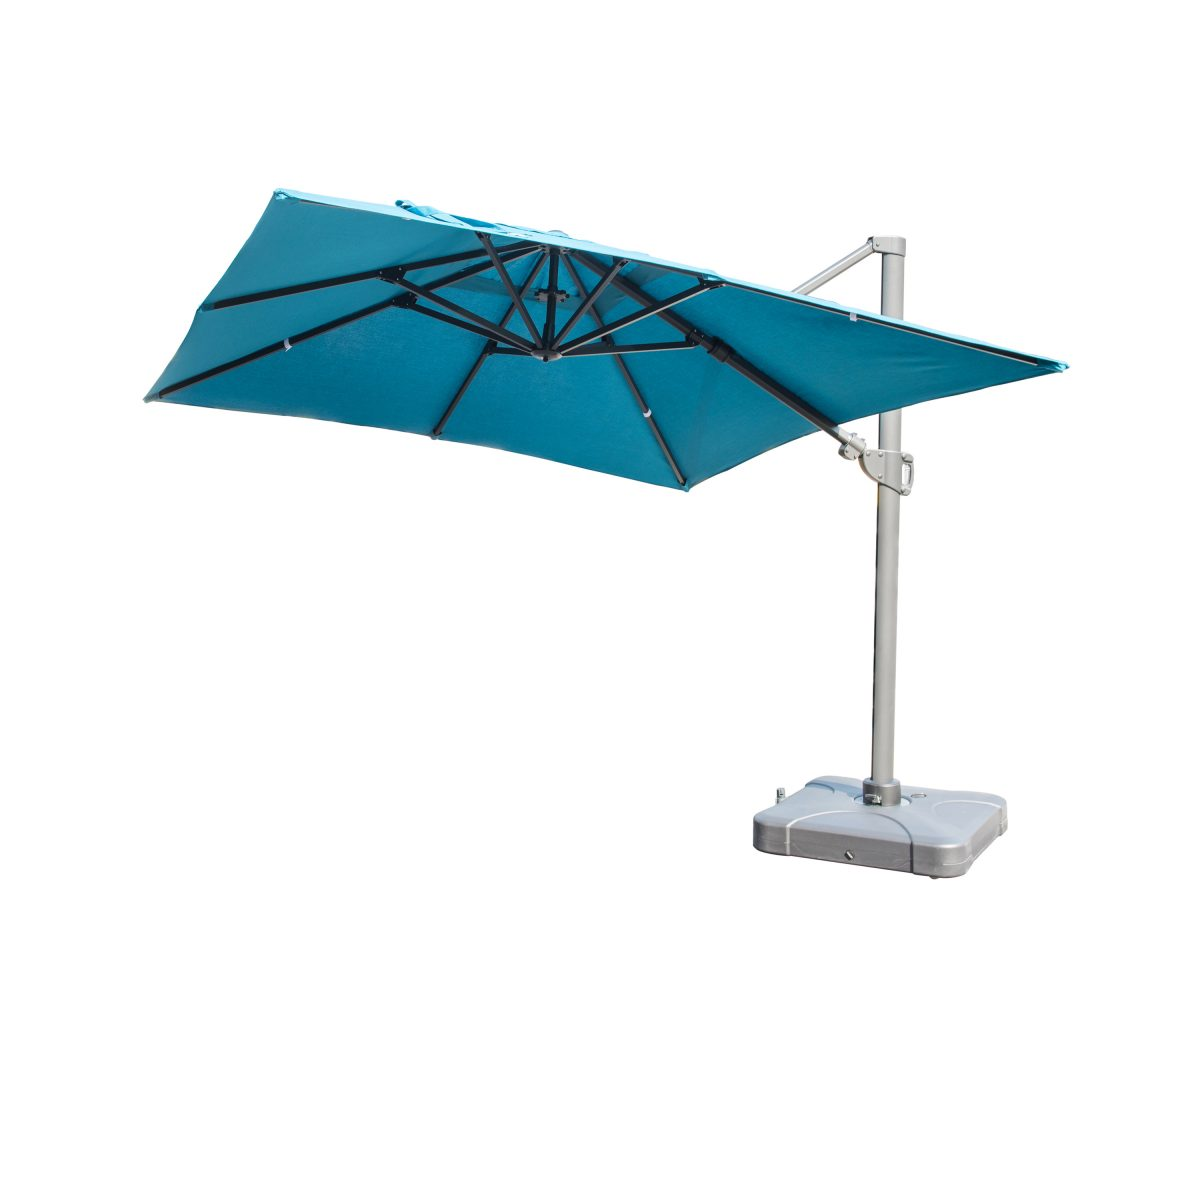 Sirio Niko Peacock Square Resort Umbrella Starsong